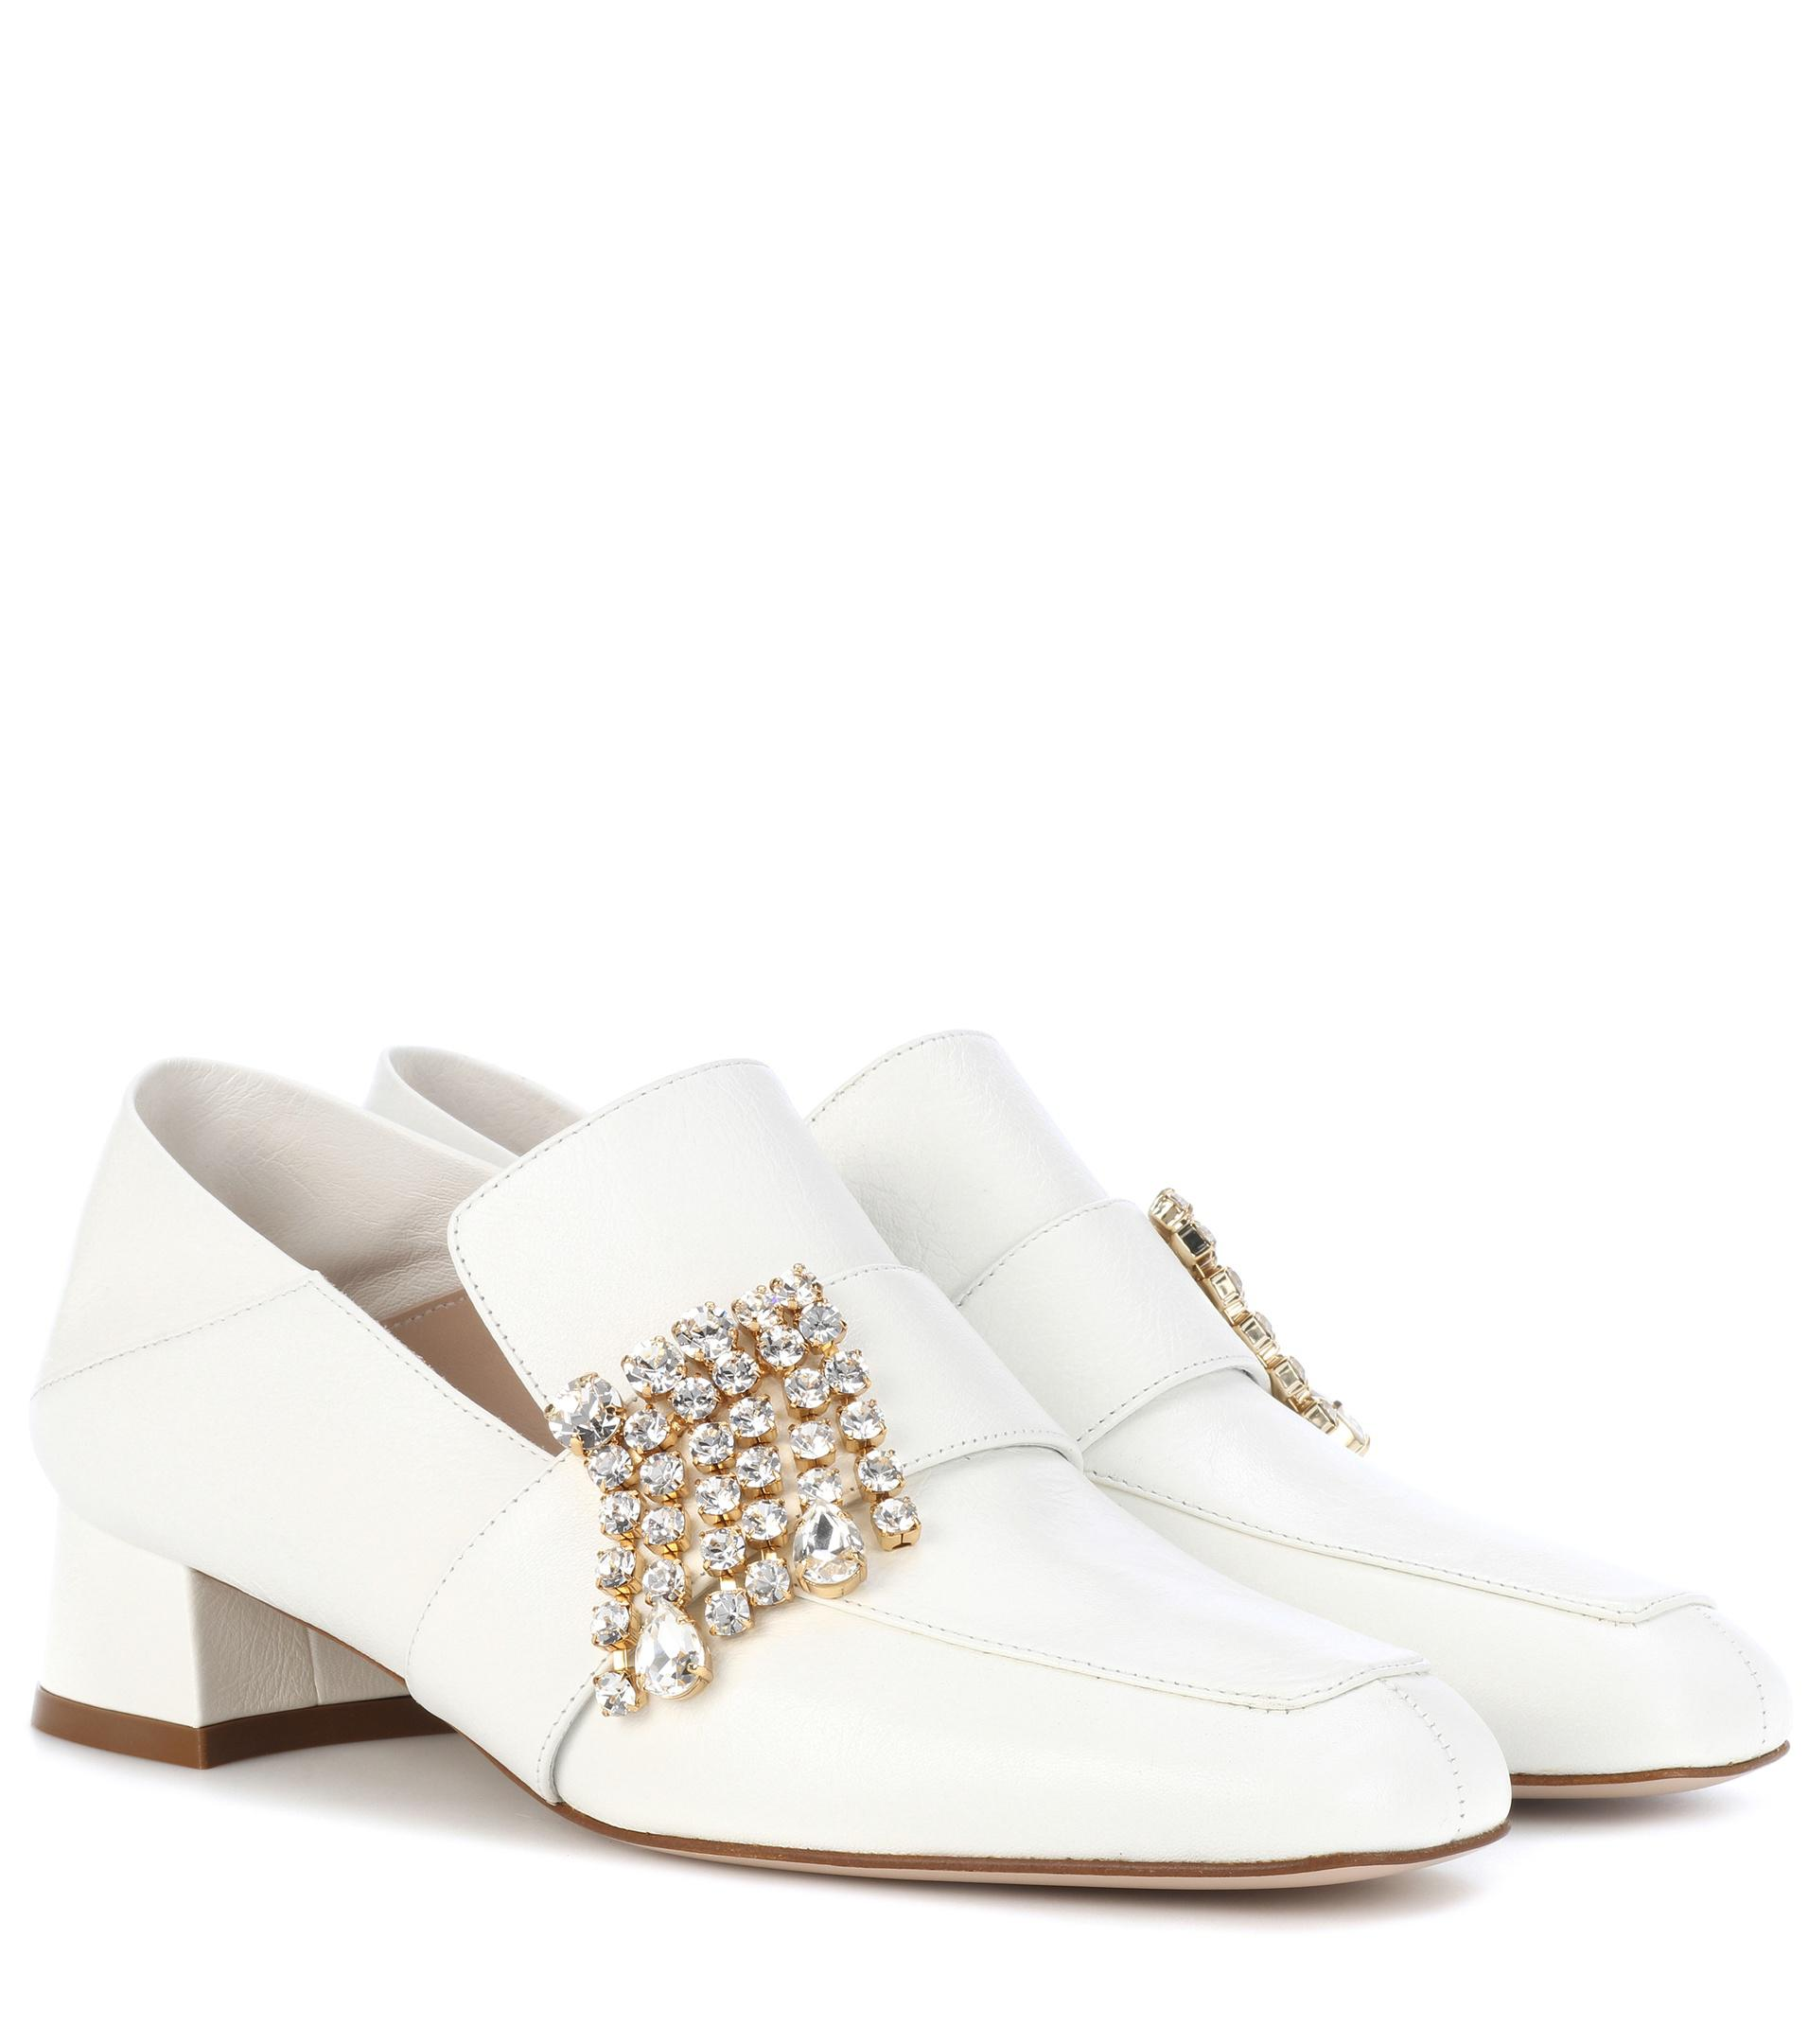 Stuart Weitzman Irises leather loafers eastbay cheap price for cheap new styles cheap online free shipping pay with paypal 4sACNgV7